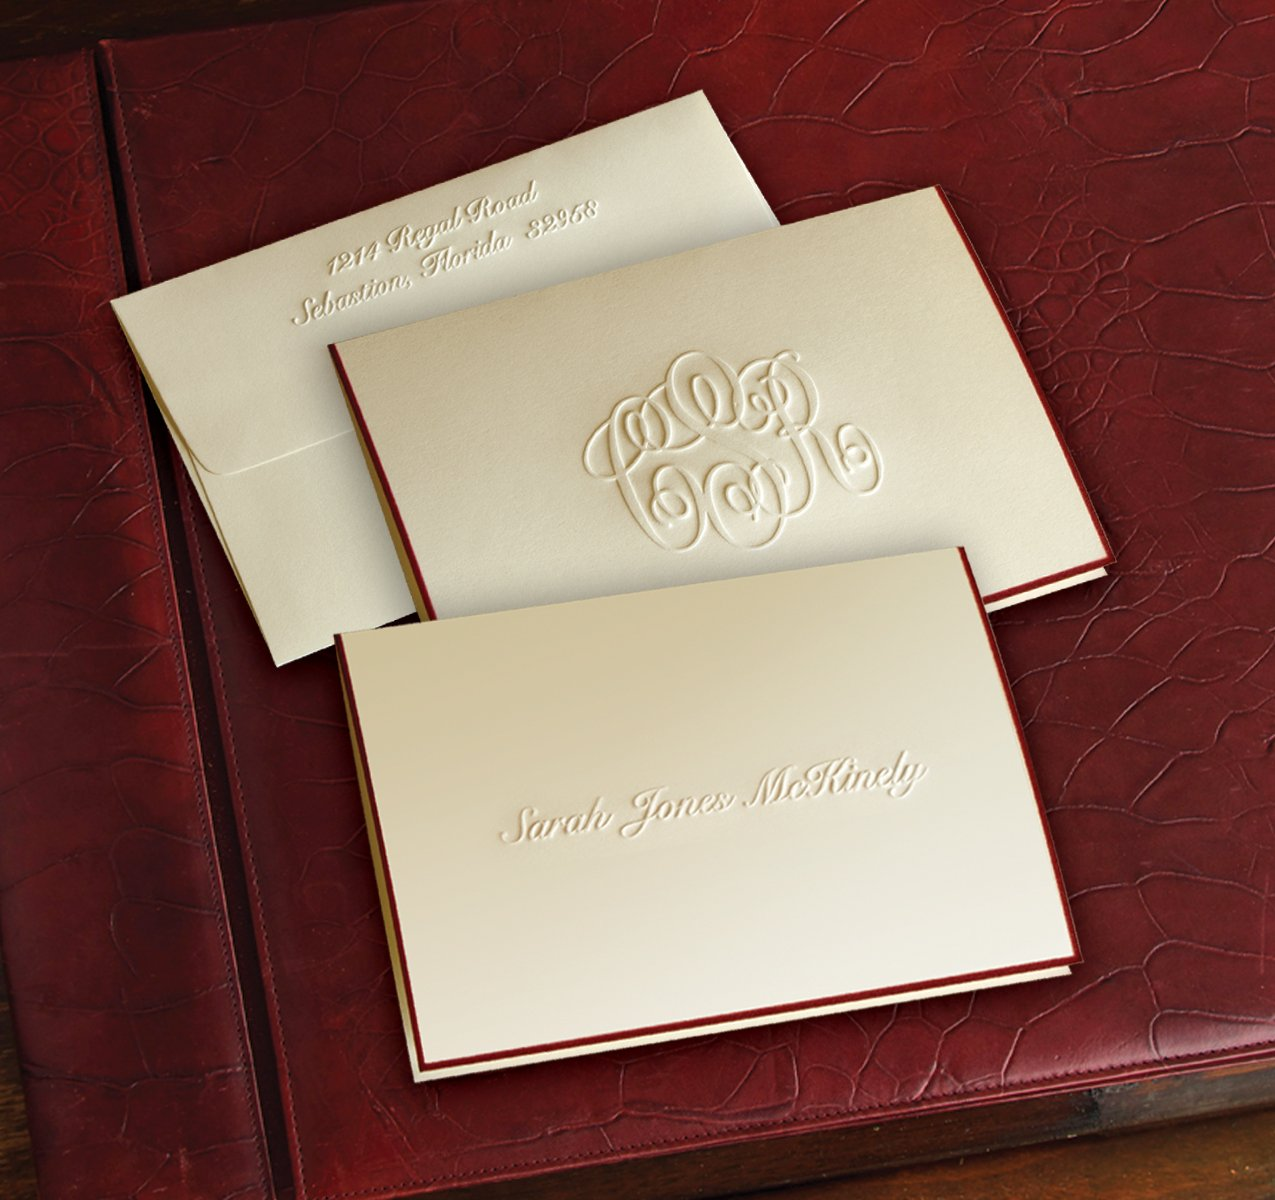 Wine Hand Bordered Embossed Fold Notes - 6232 by American Stationery